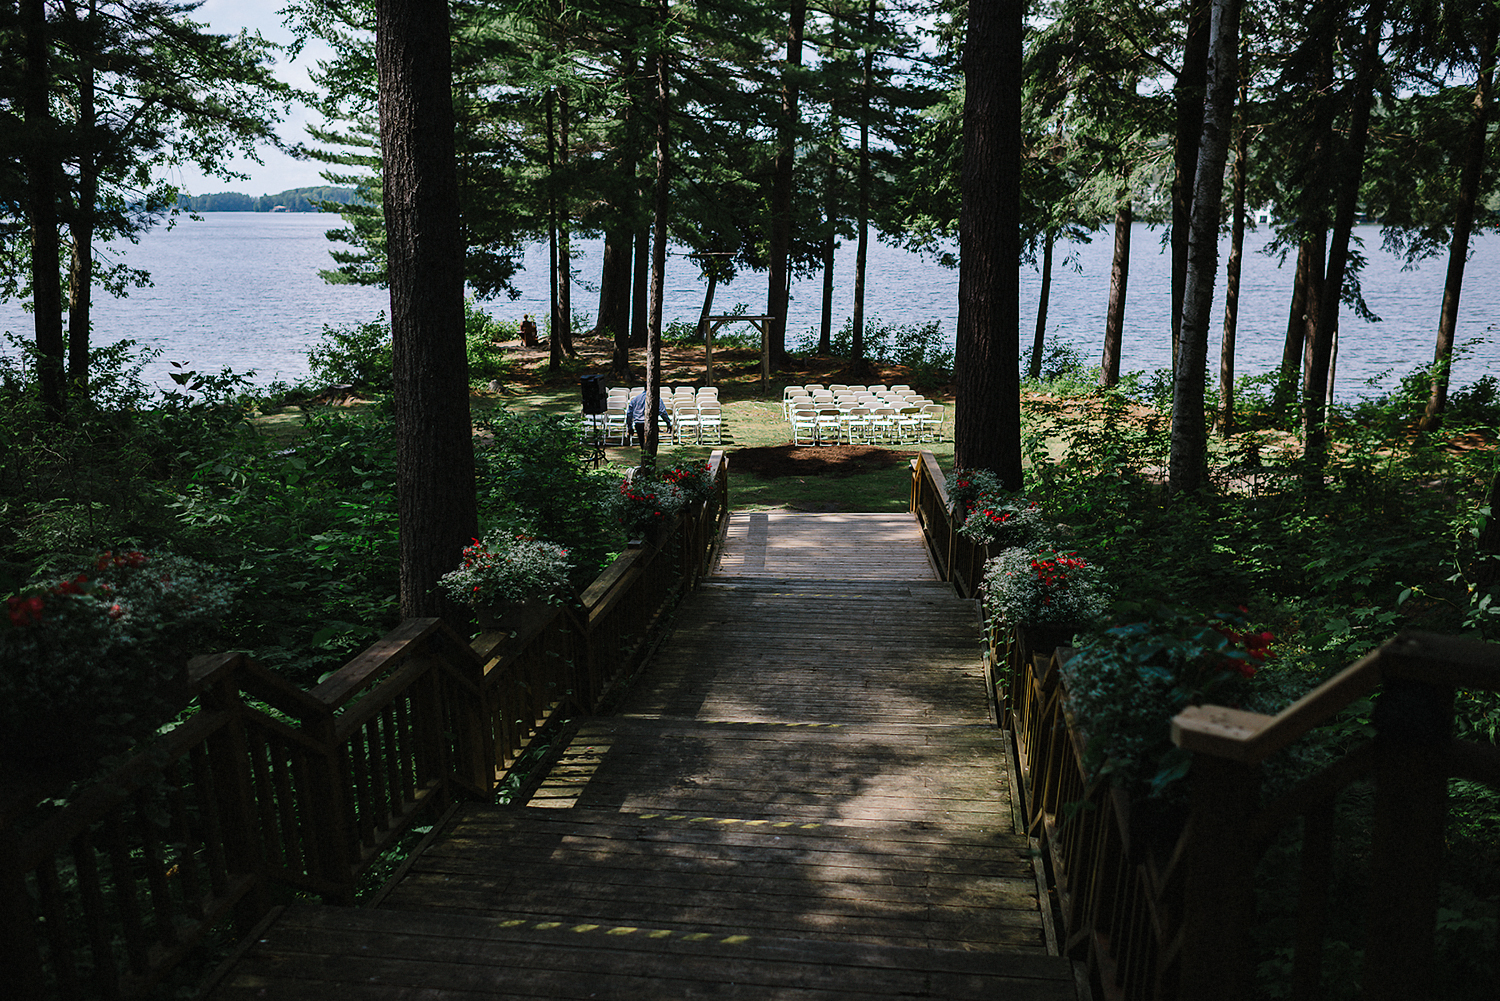 Muskoka-Cottage-Wedding-Photography-Photographer_Photojournalistic-Documentary-Wedding-Photography_Vintage-Bride-Lovers-Land-Dress_Nature_Sherwood-Inn-Lake-Weddingjpg.jpg